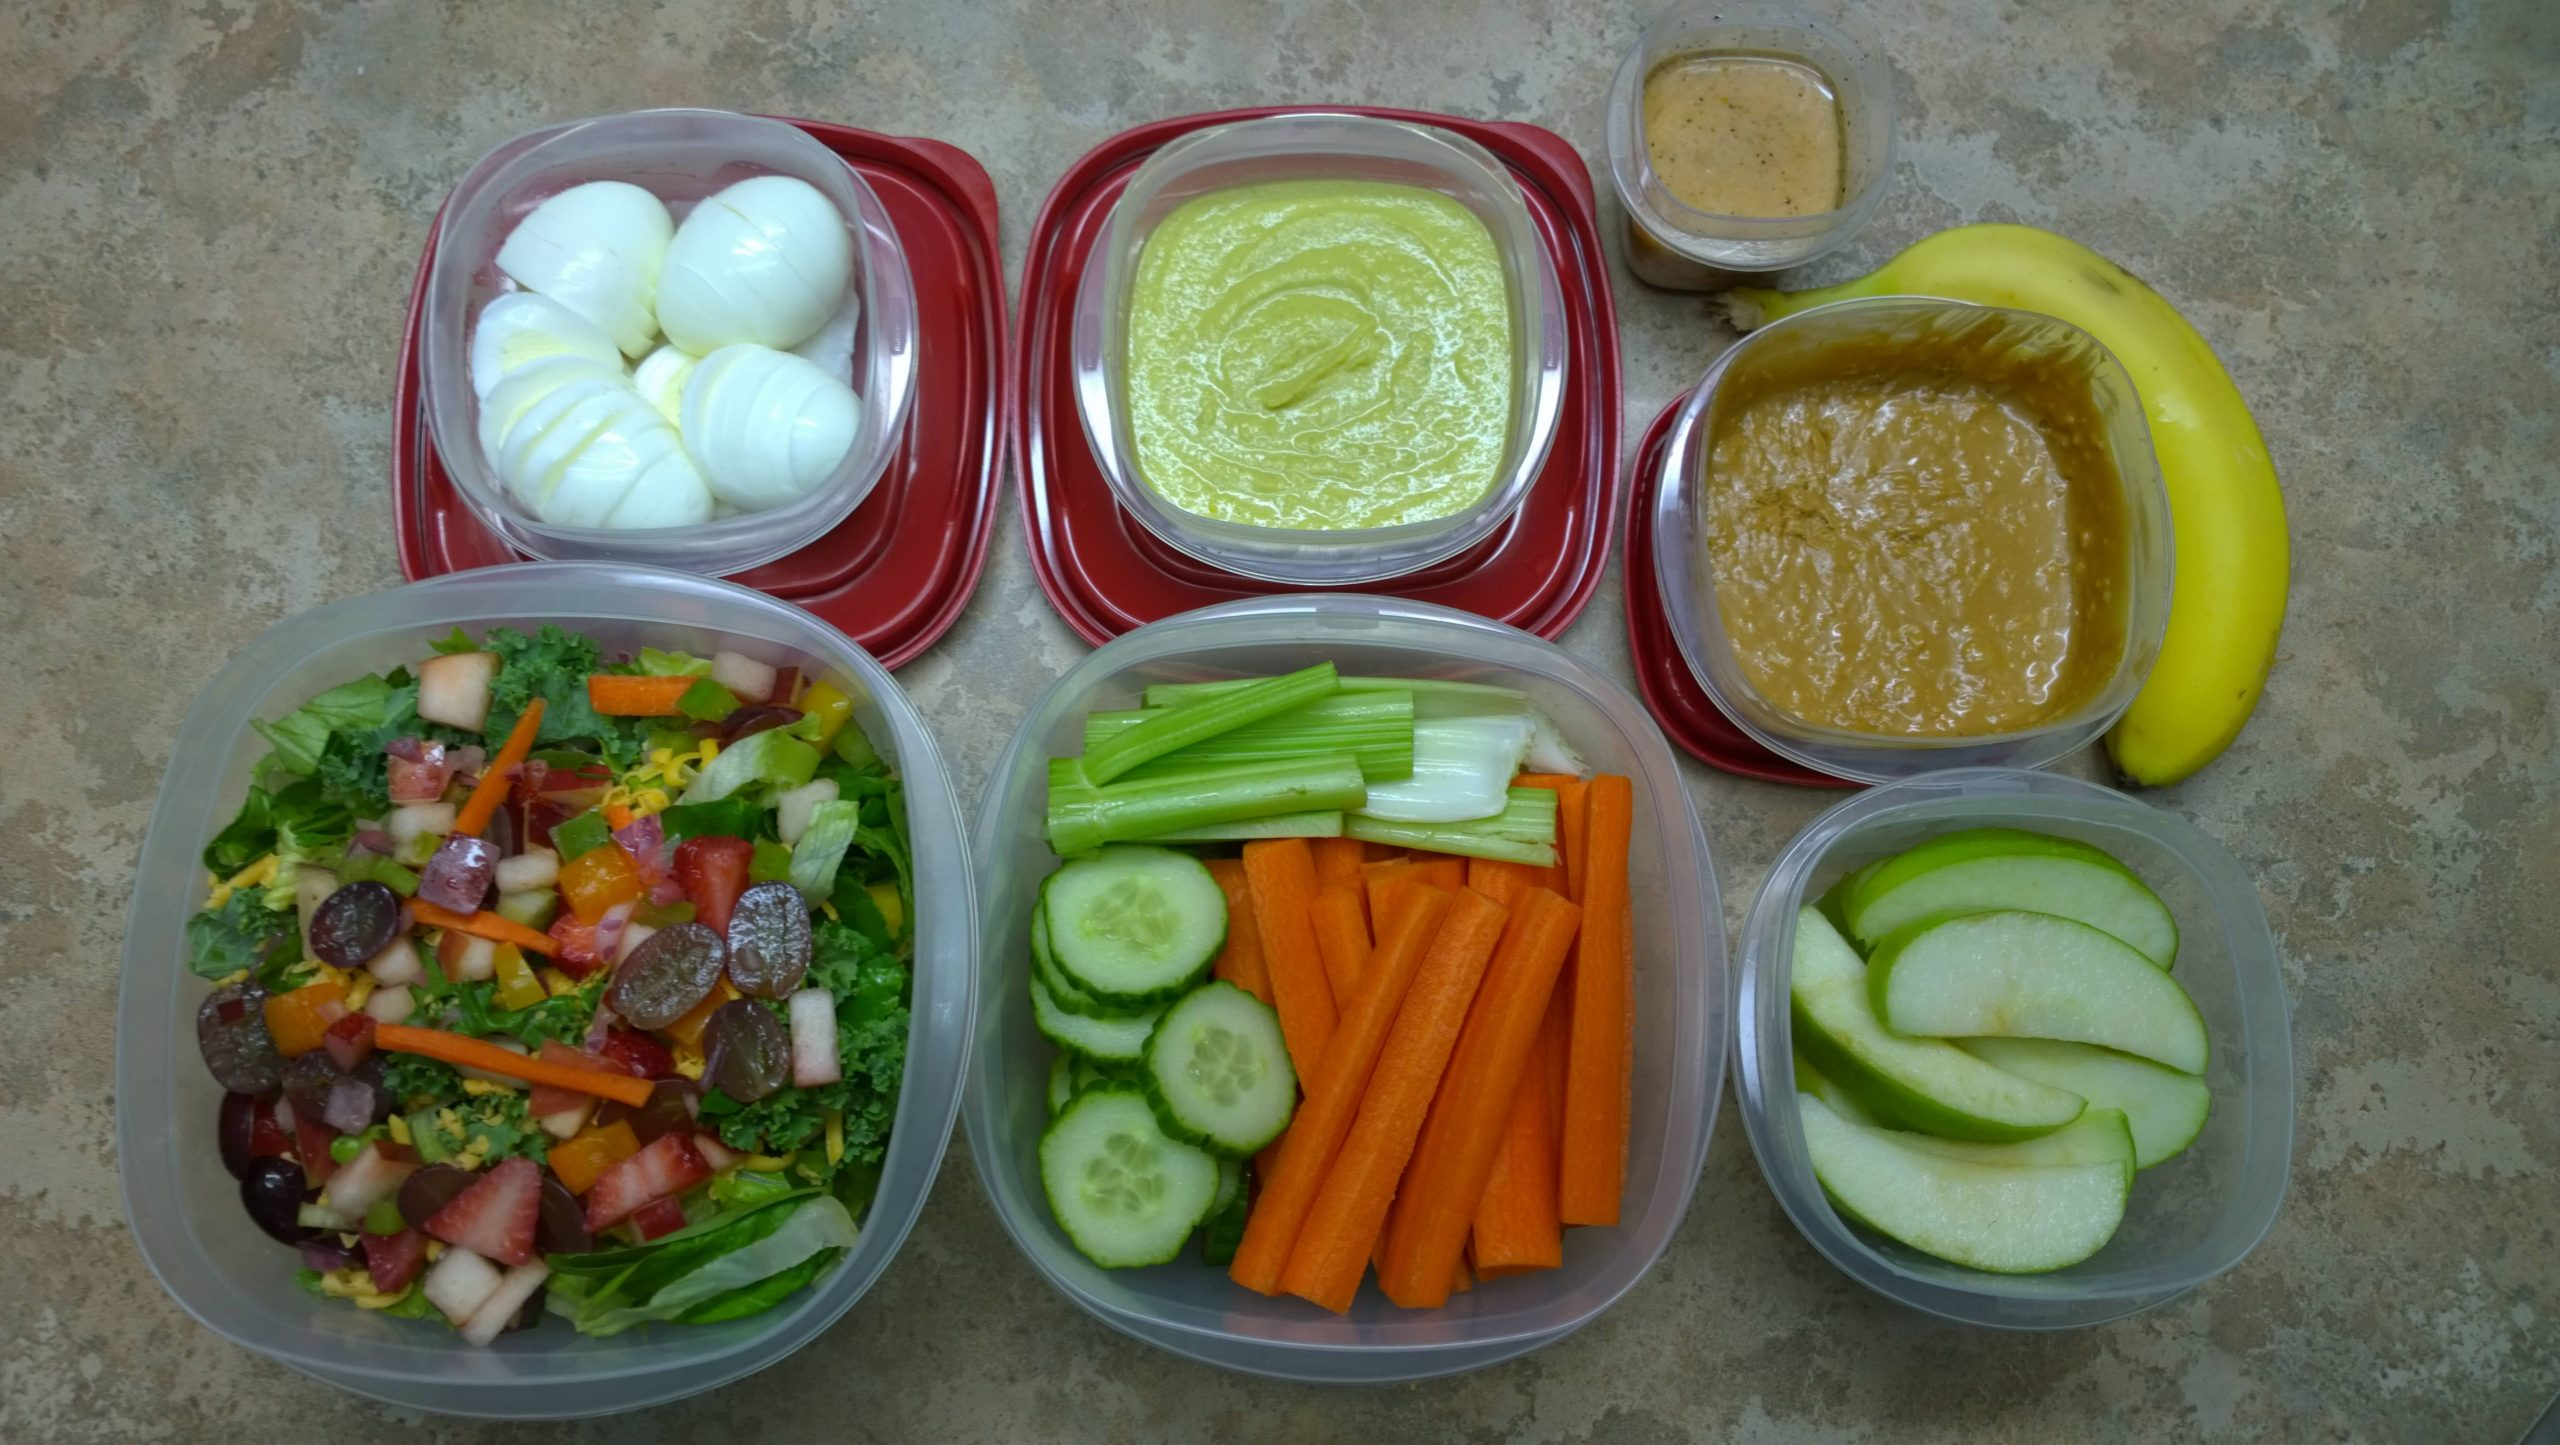 One of my favorite healthy lunches! (Killer hummus recipe in ..